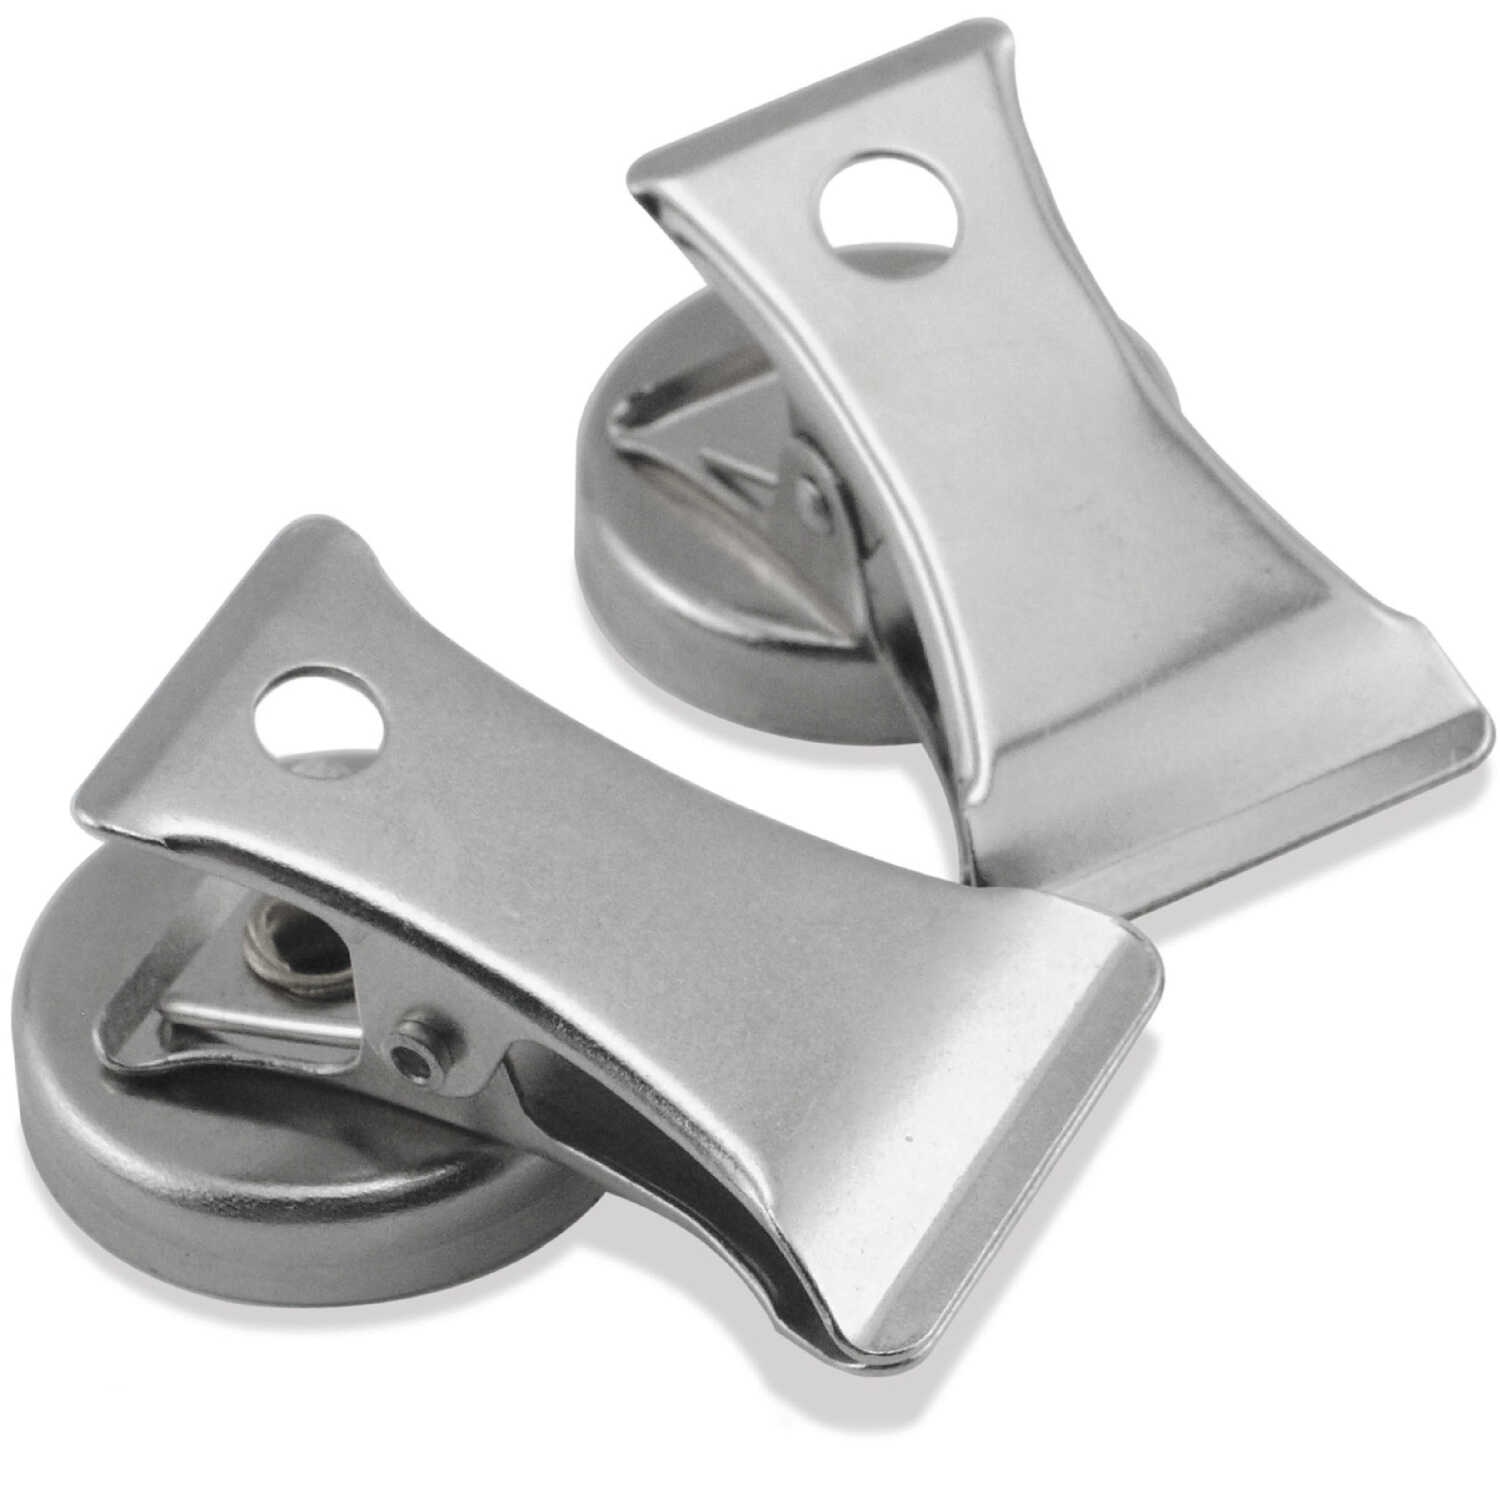 Master Magnetics  1.8 in. Ceramic  Clip  3 lb. pull 3.4 MGOe Magnetic Clips  2 pc. Silver